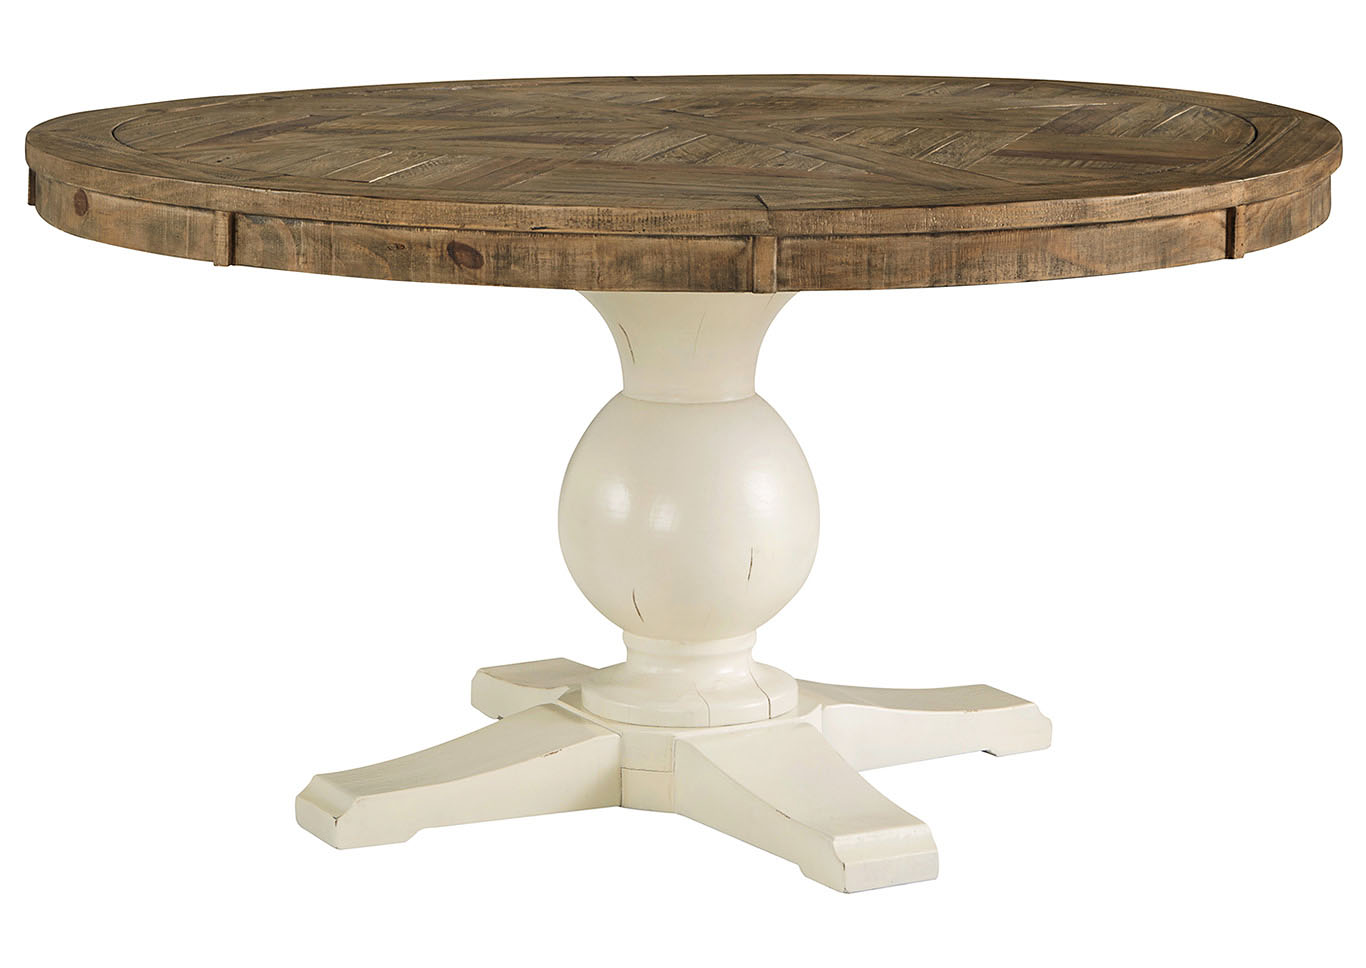 Northwest Furniture Outlet Grindleburg White Light Brown Round Dining Room Table